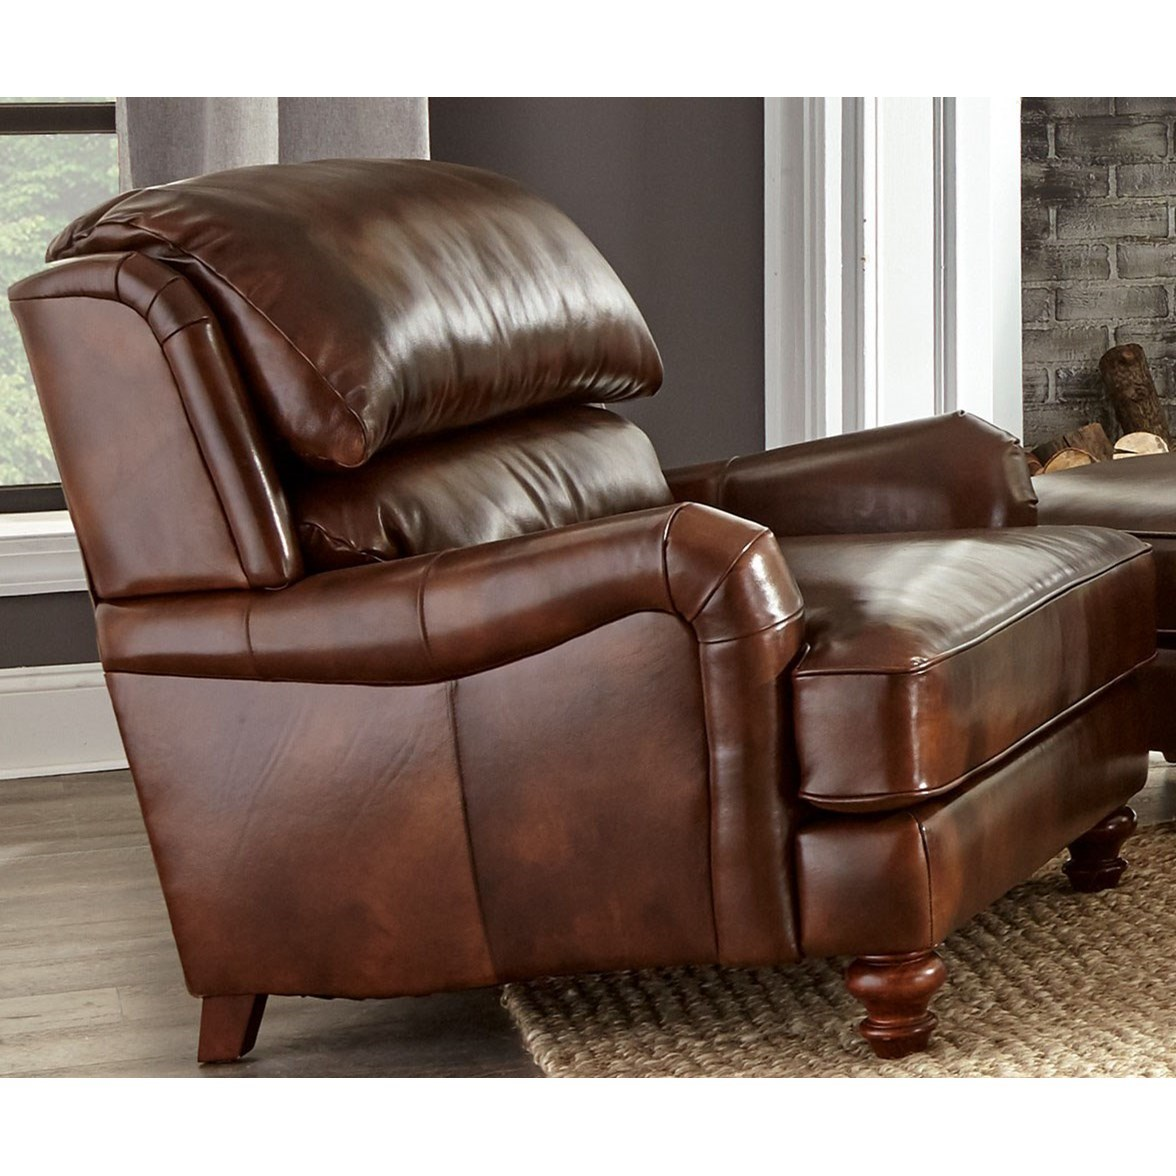 Craftmaster L162250 Craftmaster Leather Chair - Item Number: L162210Tinsely-09